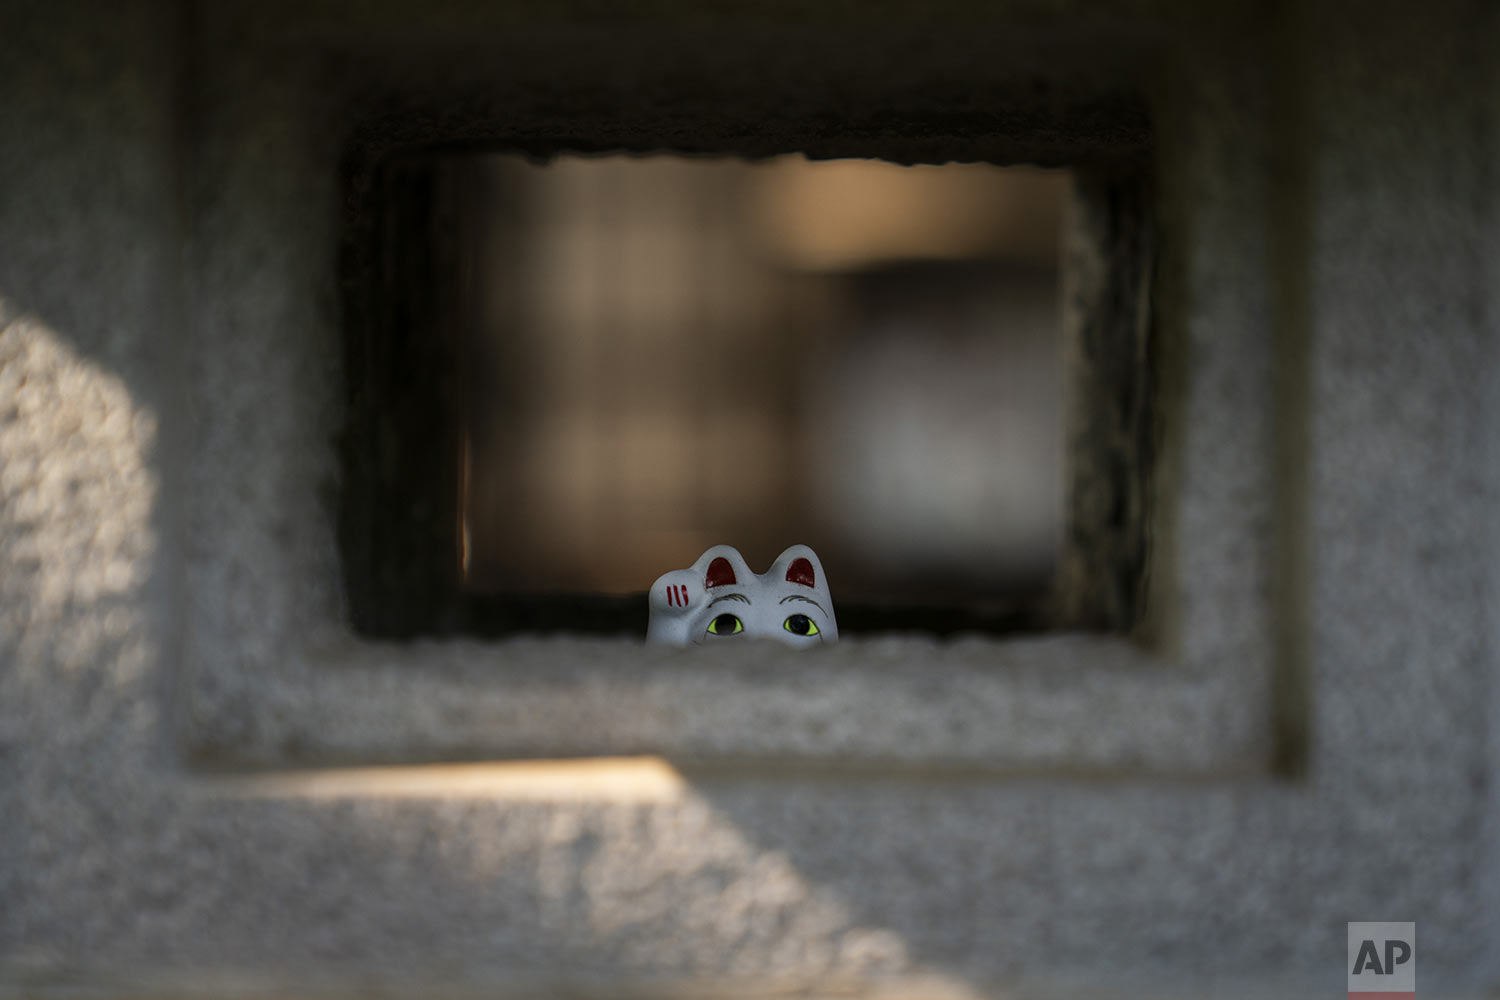 A small beckoning cat figurine is placed inside a stone lamp at Gotokuji Temple in Tokyo, Tuesday, June 25, 2019. (AP Photo/Jae C. Hong)